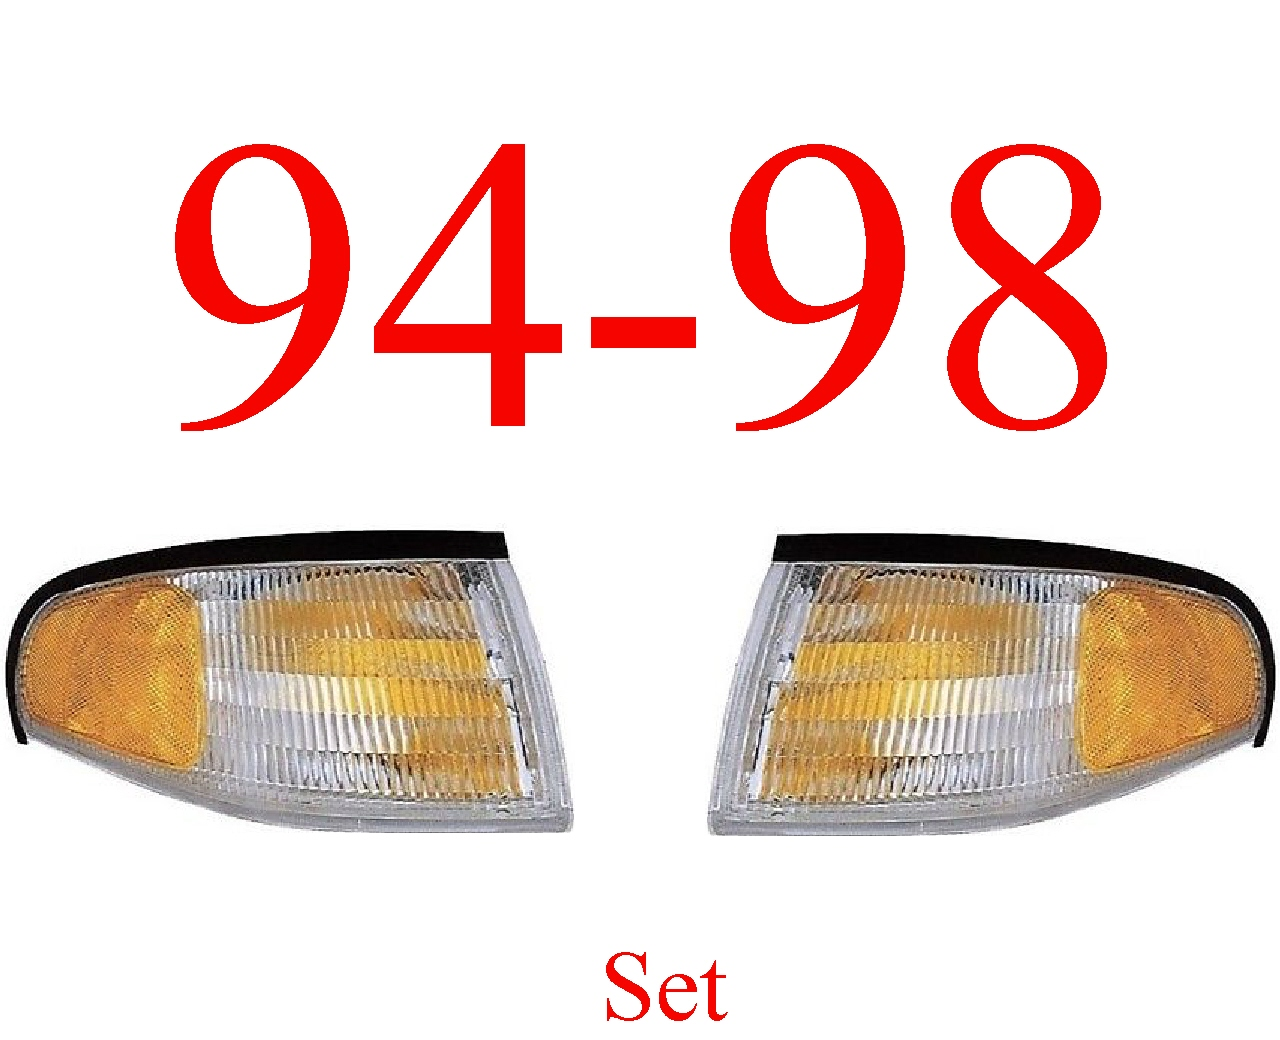 94-98 Mustang 2Pc Parking Light Kit